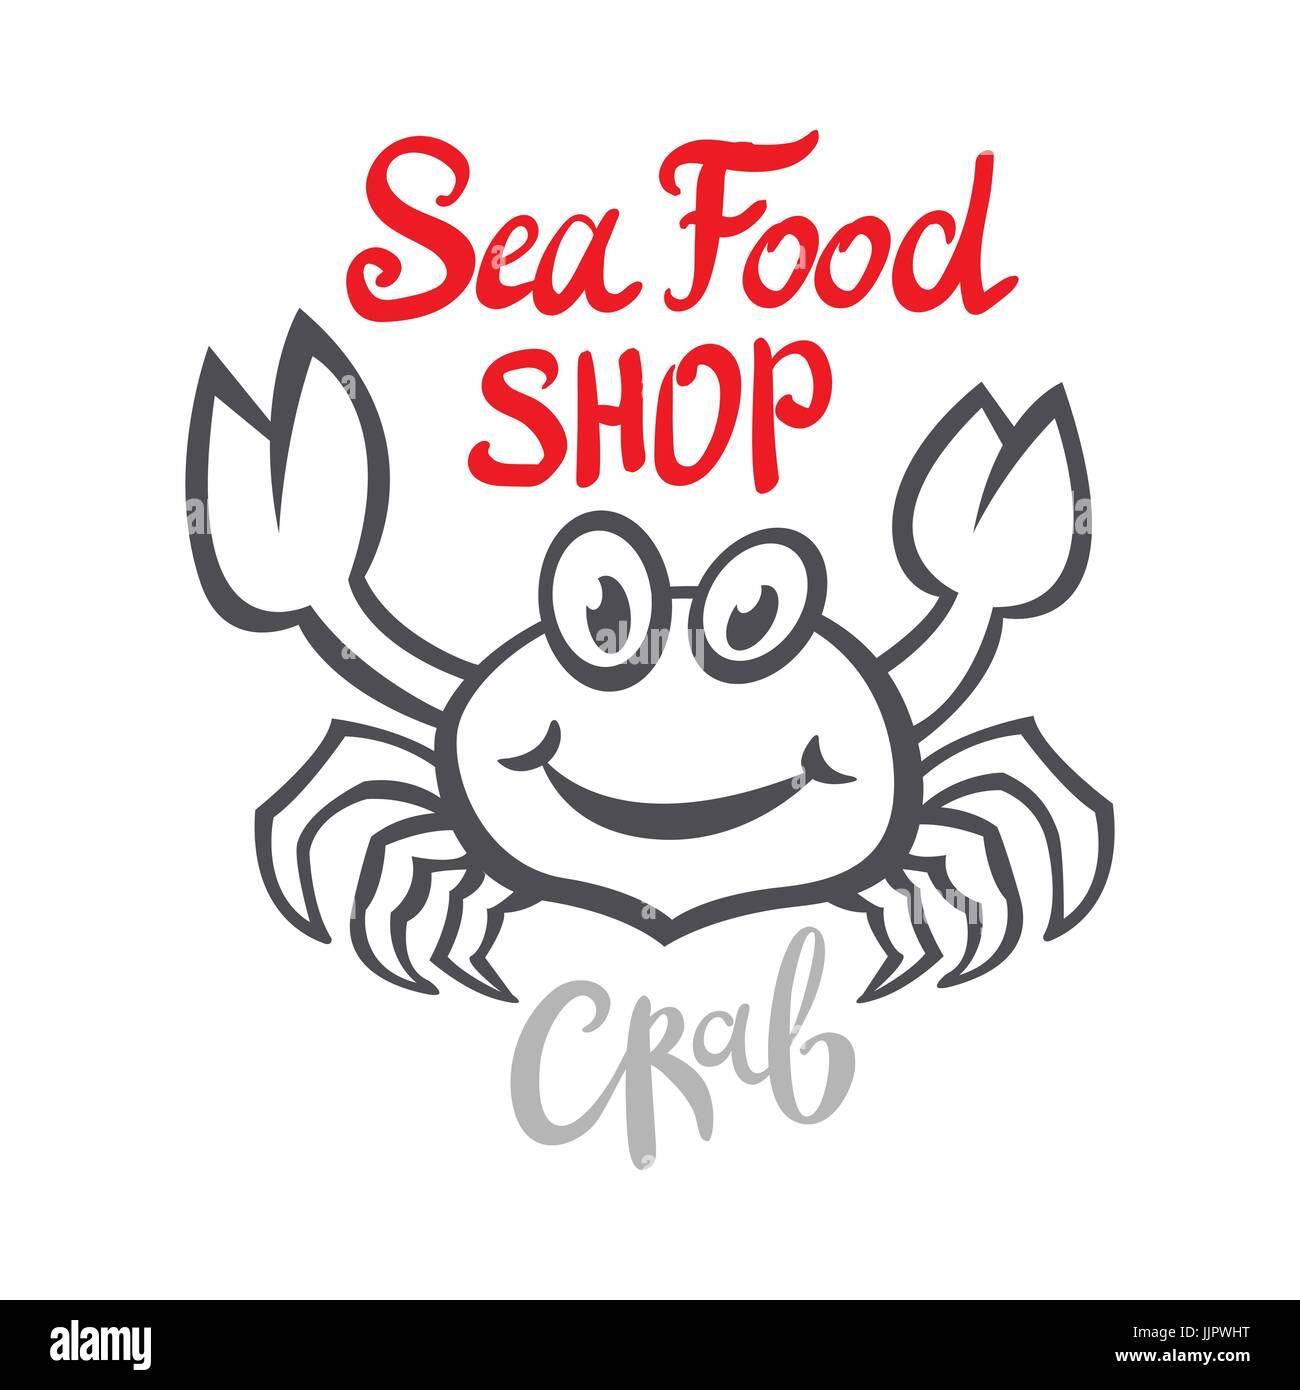 edible crab black background stock photos edible crab black